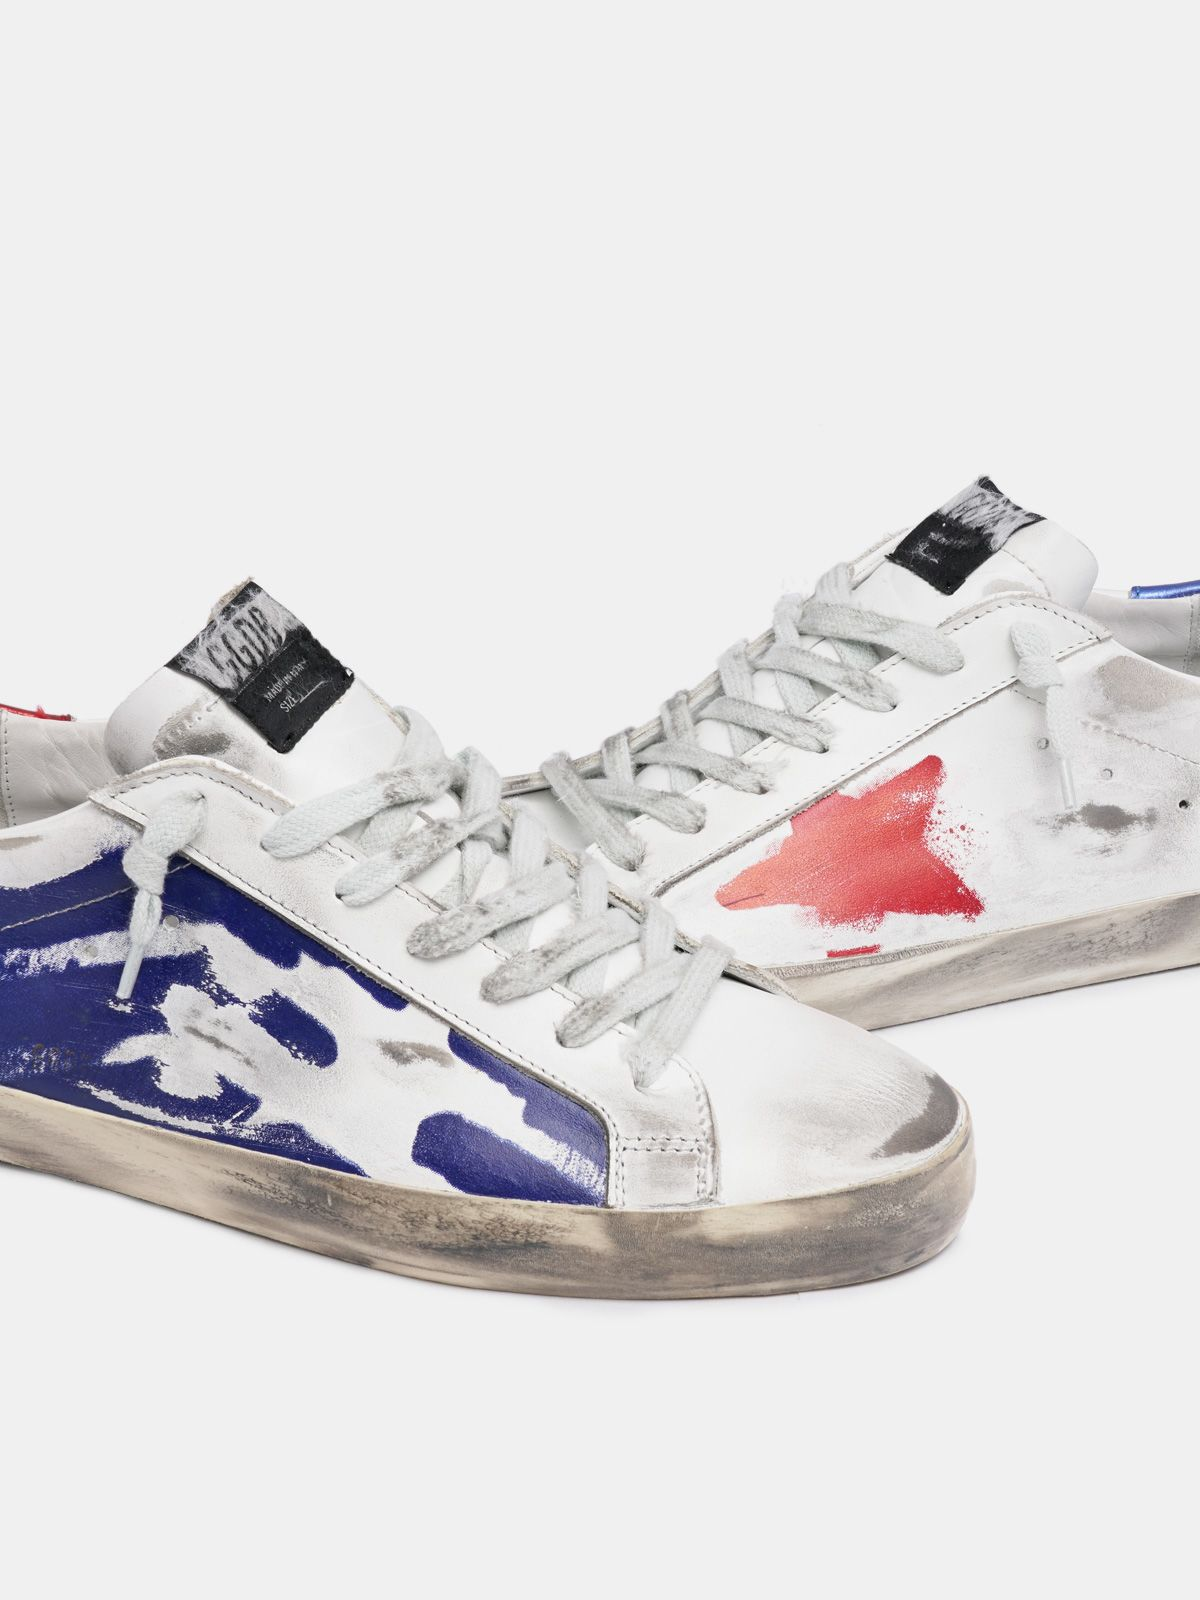 Golden Goose - Metallic red and blue Super-Star sneakers in